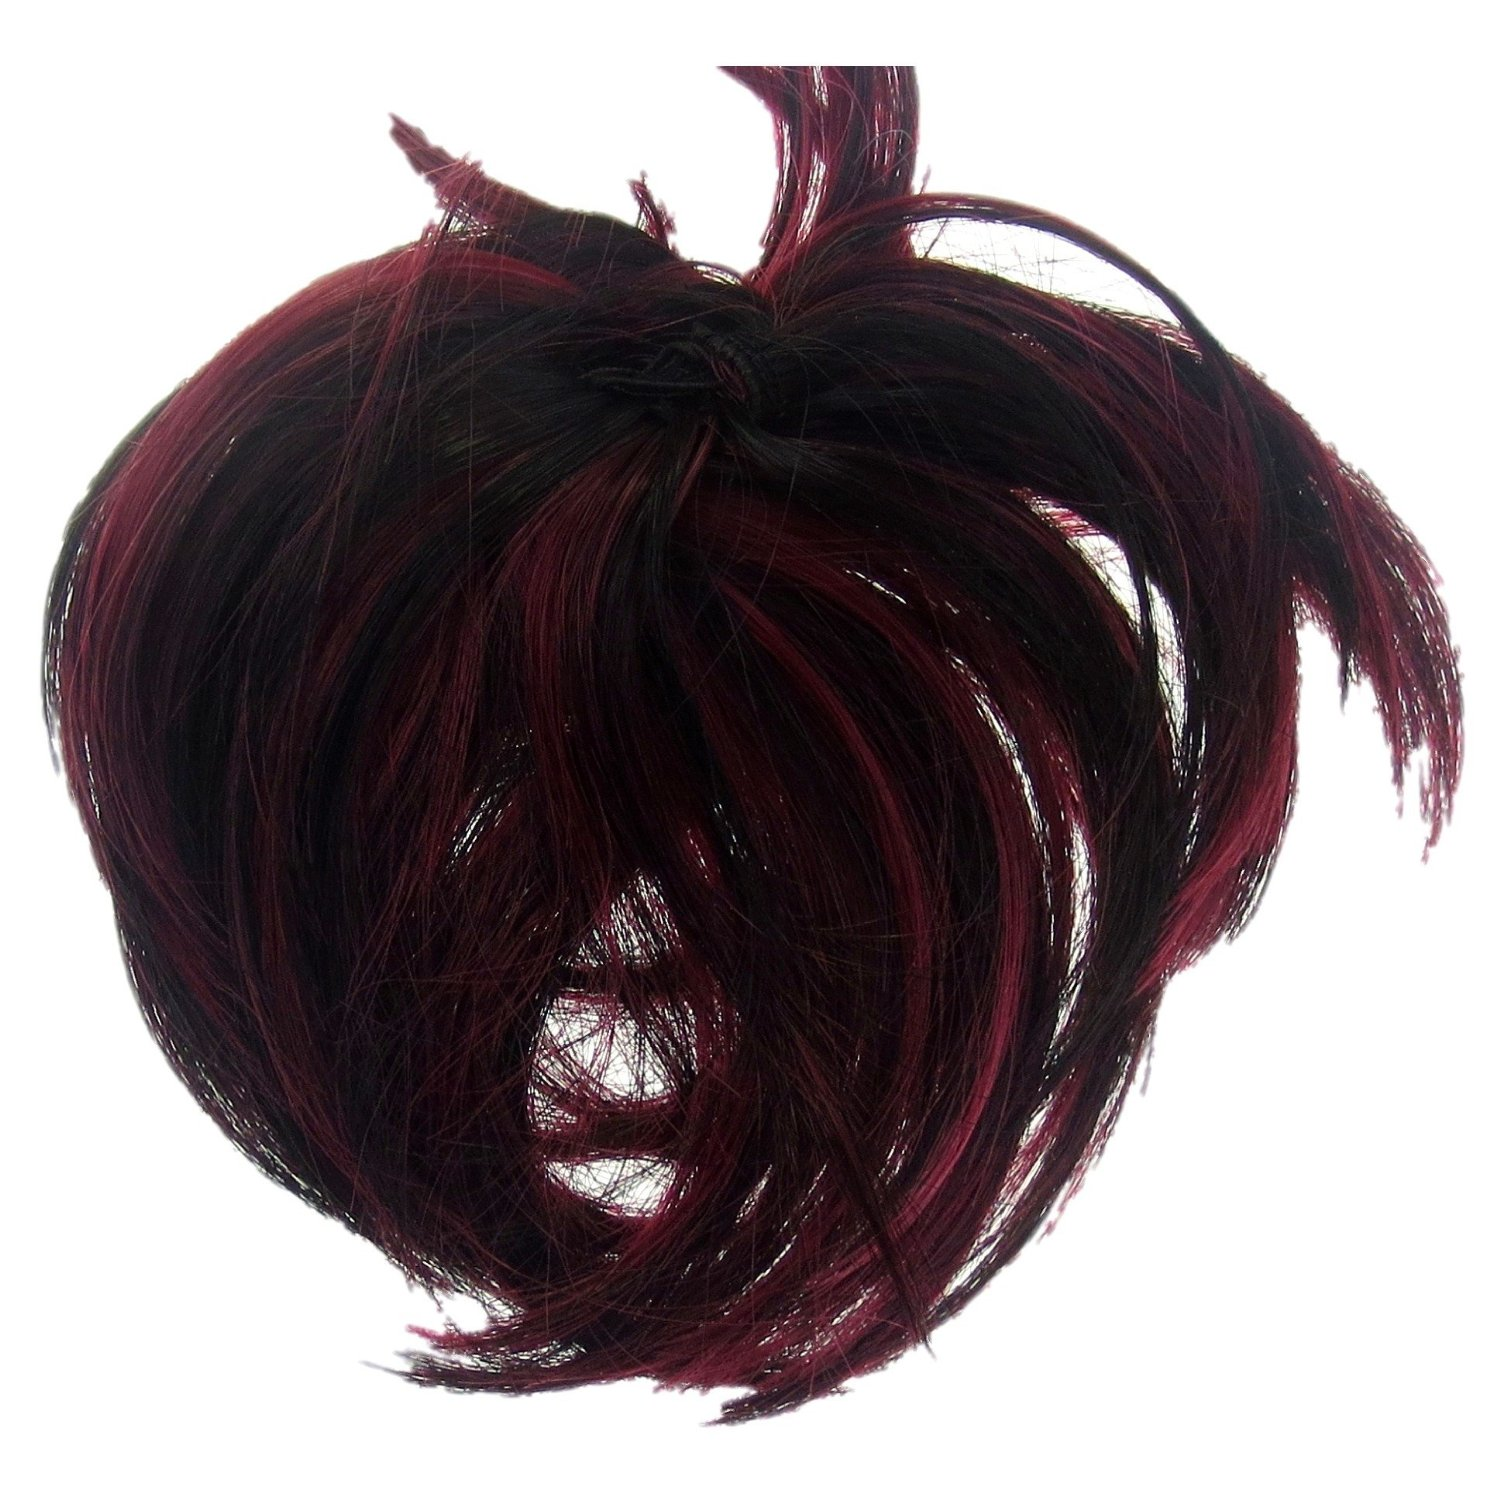 Buy Scrunchie Hair Extension Black With Ruby Red Highlights Up Do